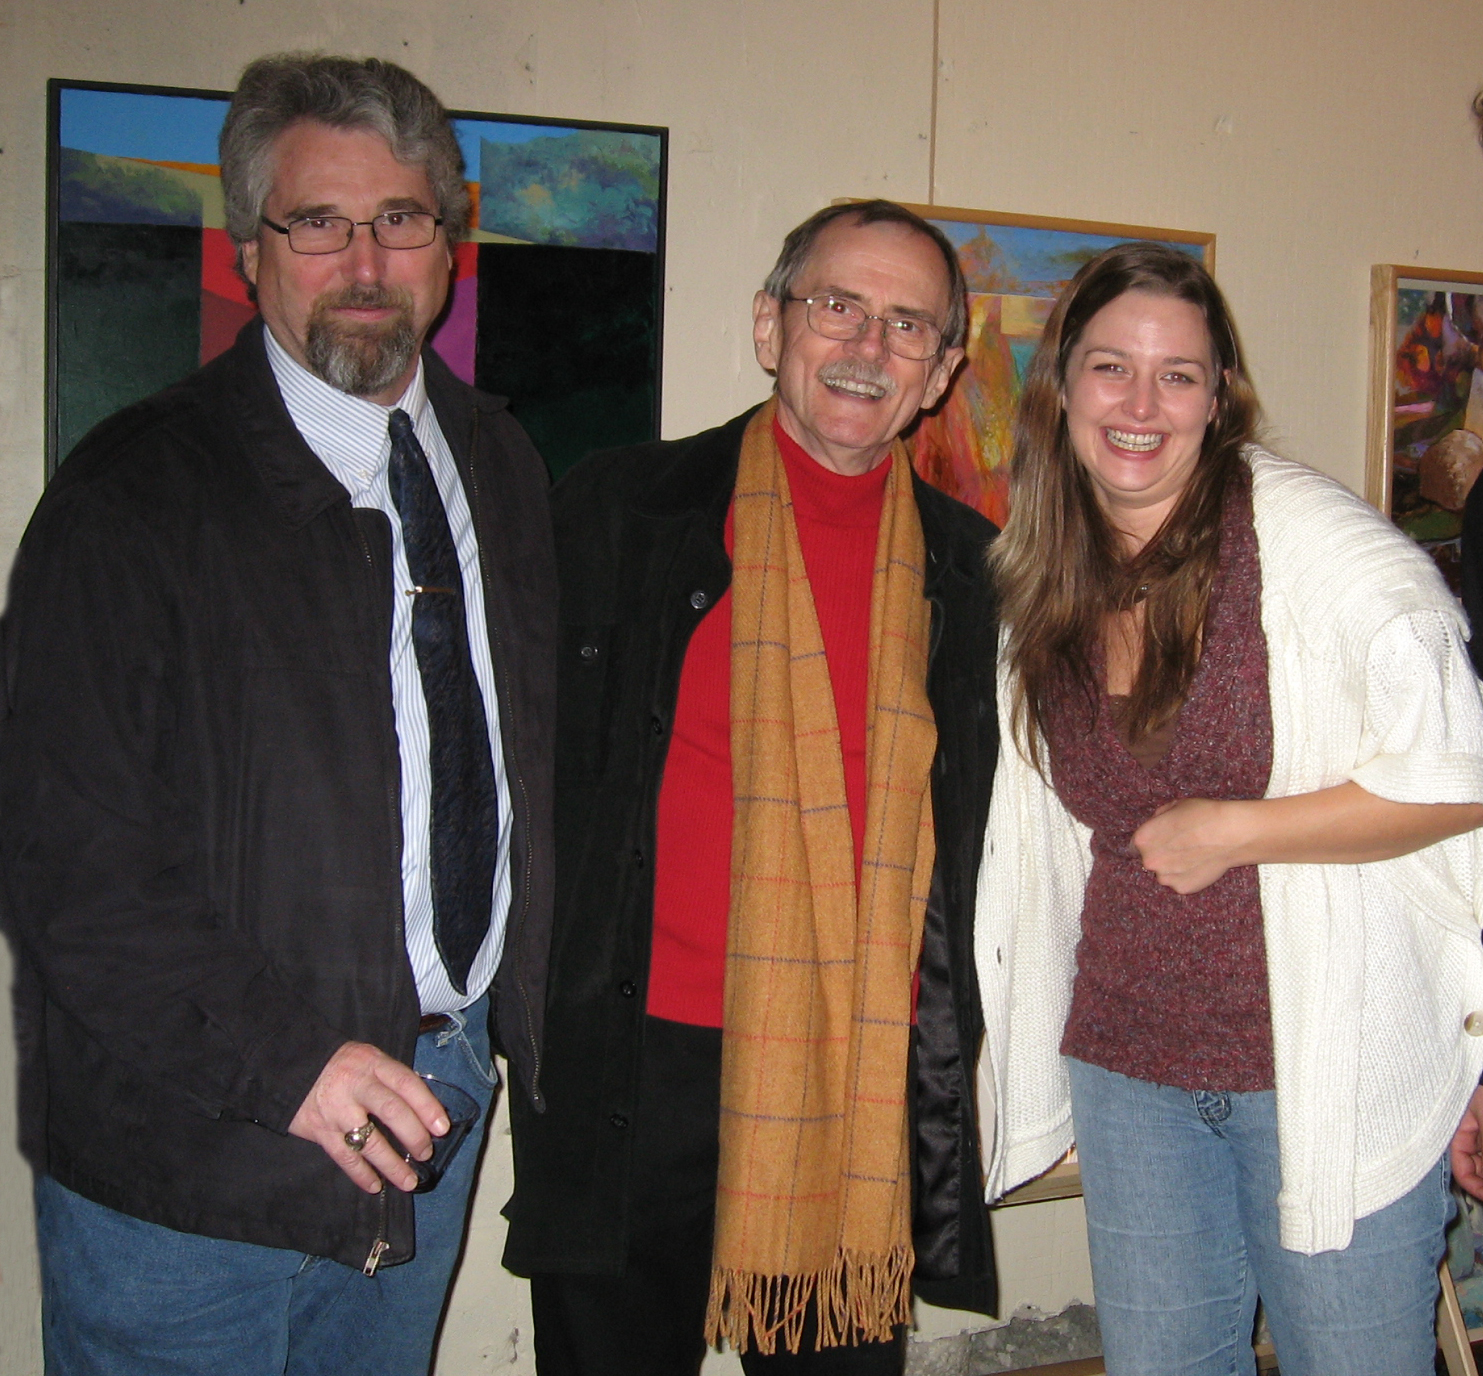 Larry J.Davis (center) with fellow Southlight Gallery artist Tony Wood (left) and Southlight Galerina Erin Walker (right) mark a year of growth and success culminating in the recent Patron's Party.